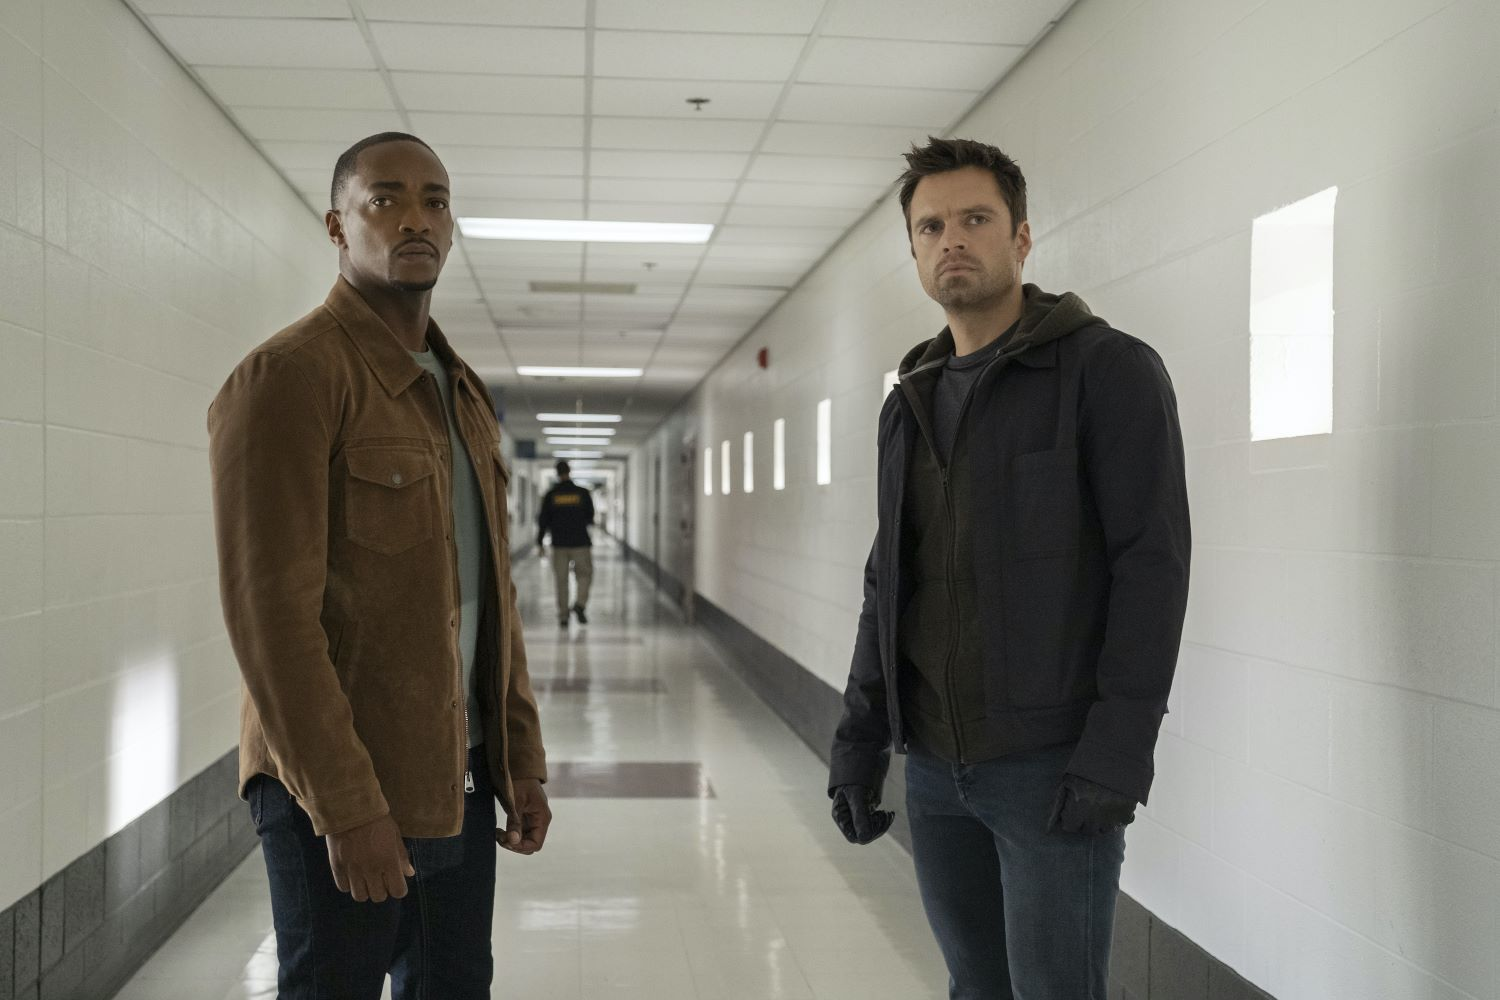 Anthony Mackie and Sebastian Stan in 'The Falcon and the Winter Soldier'